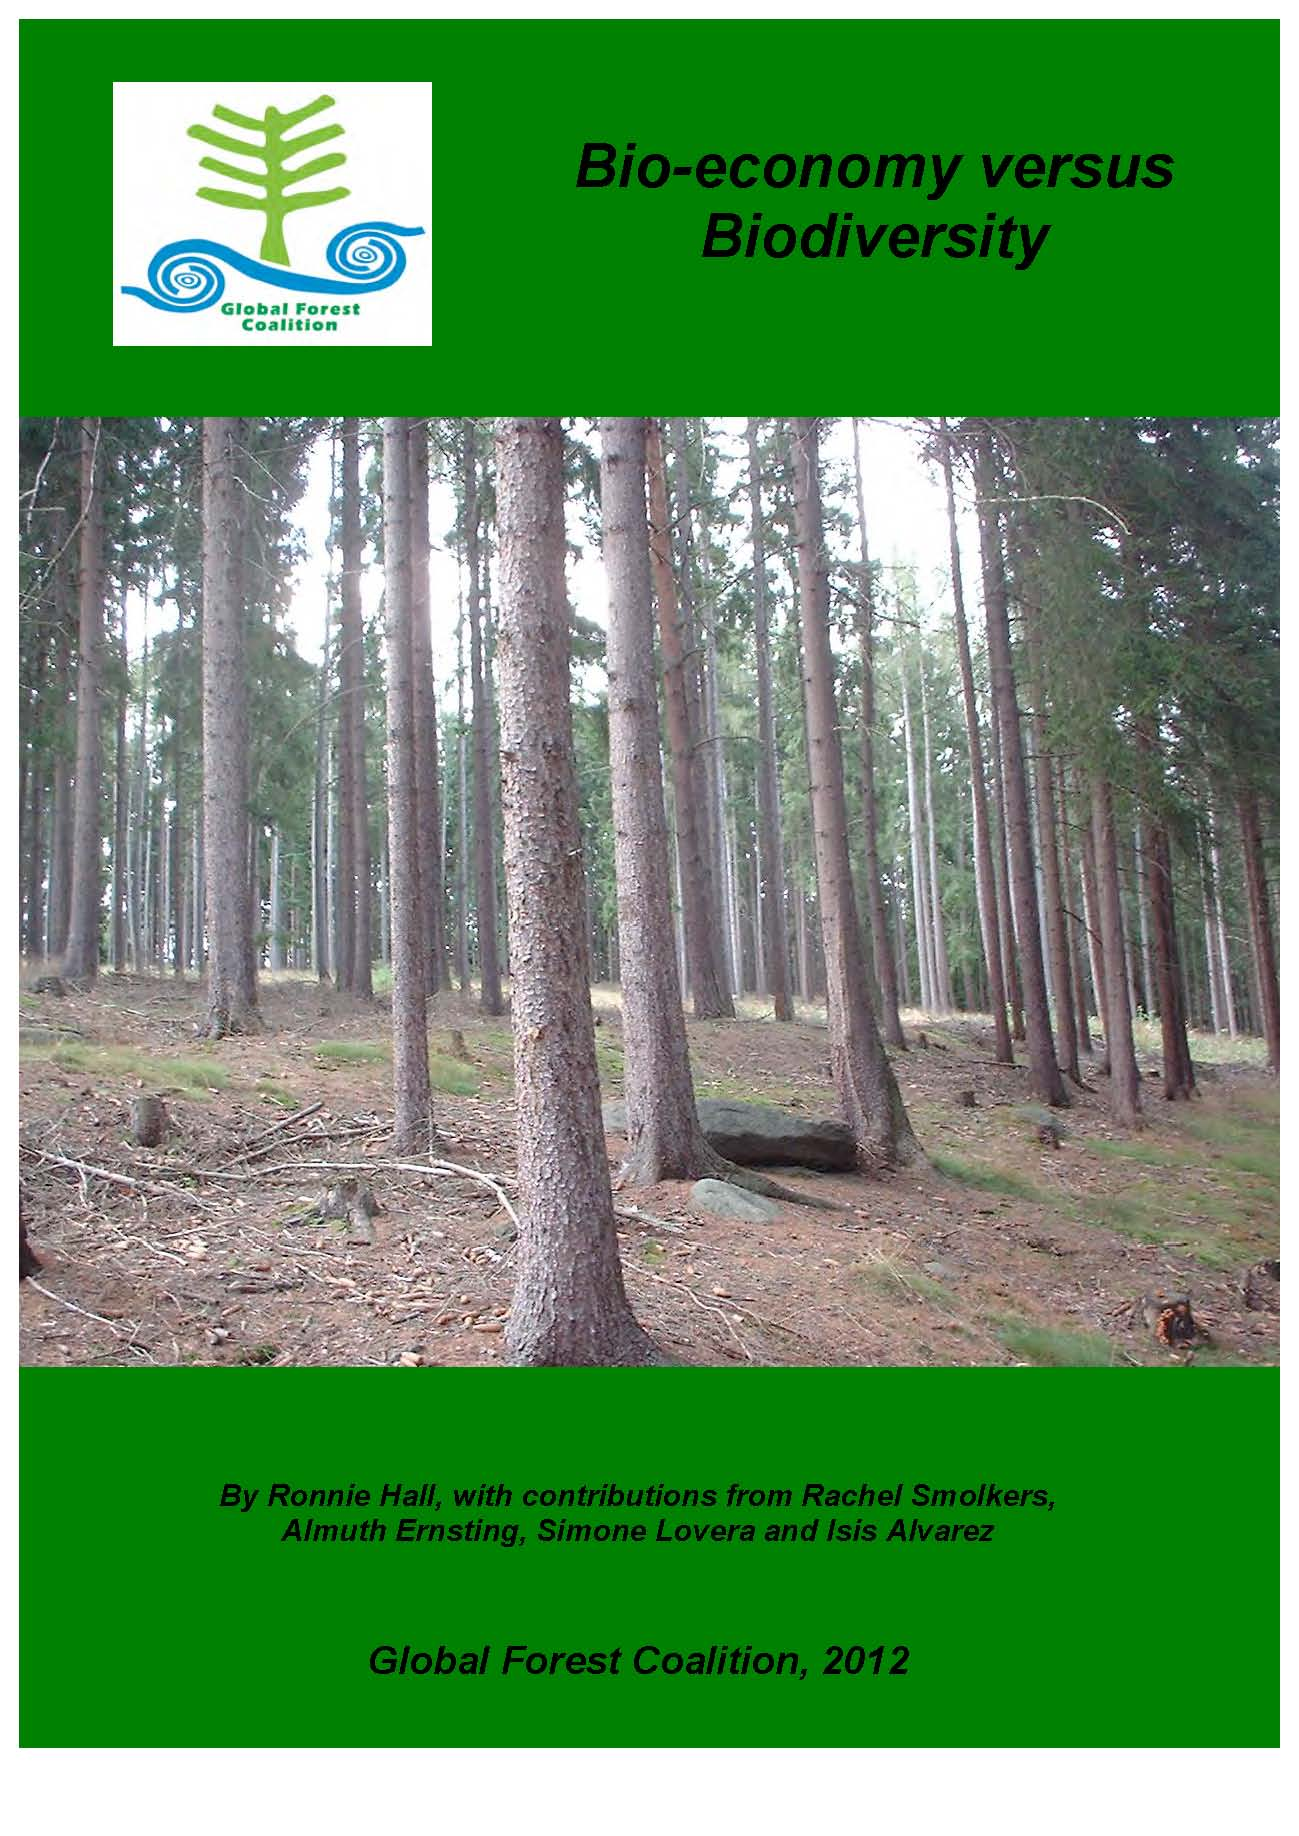 Global forest coalition media release the bioeconomy is bad for announced his new national bioeconomy blueprint today the global forest coalition 1 unveiled its report bio economy versus biodiversity 2 malvernweather Choice Image